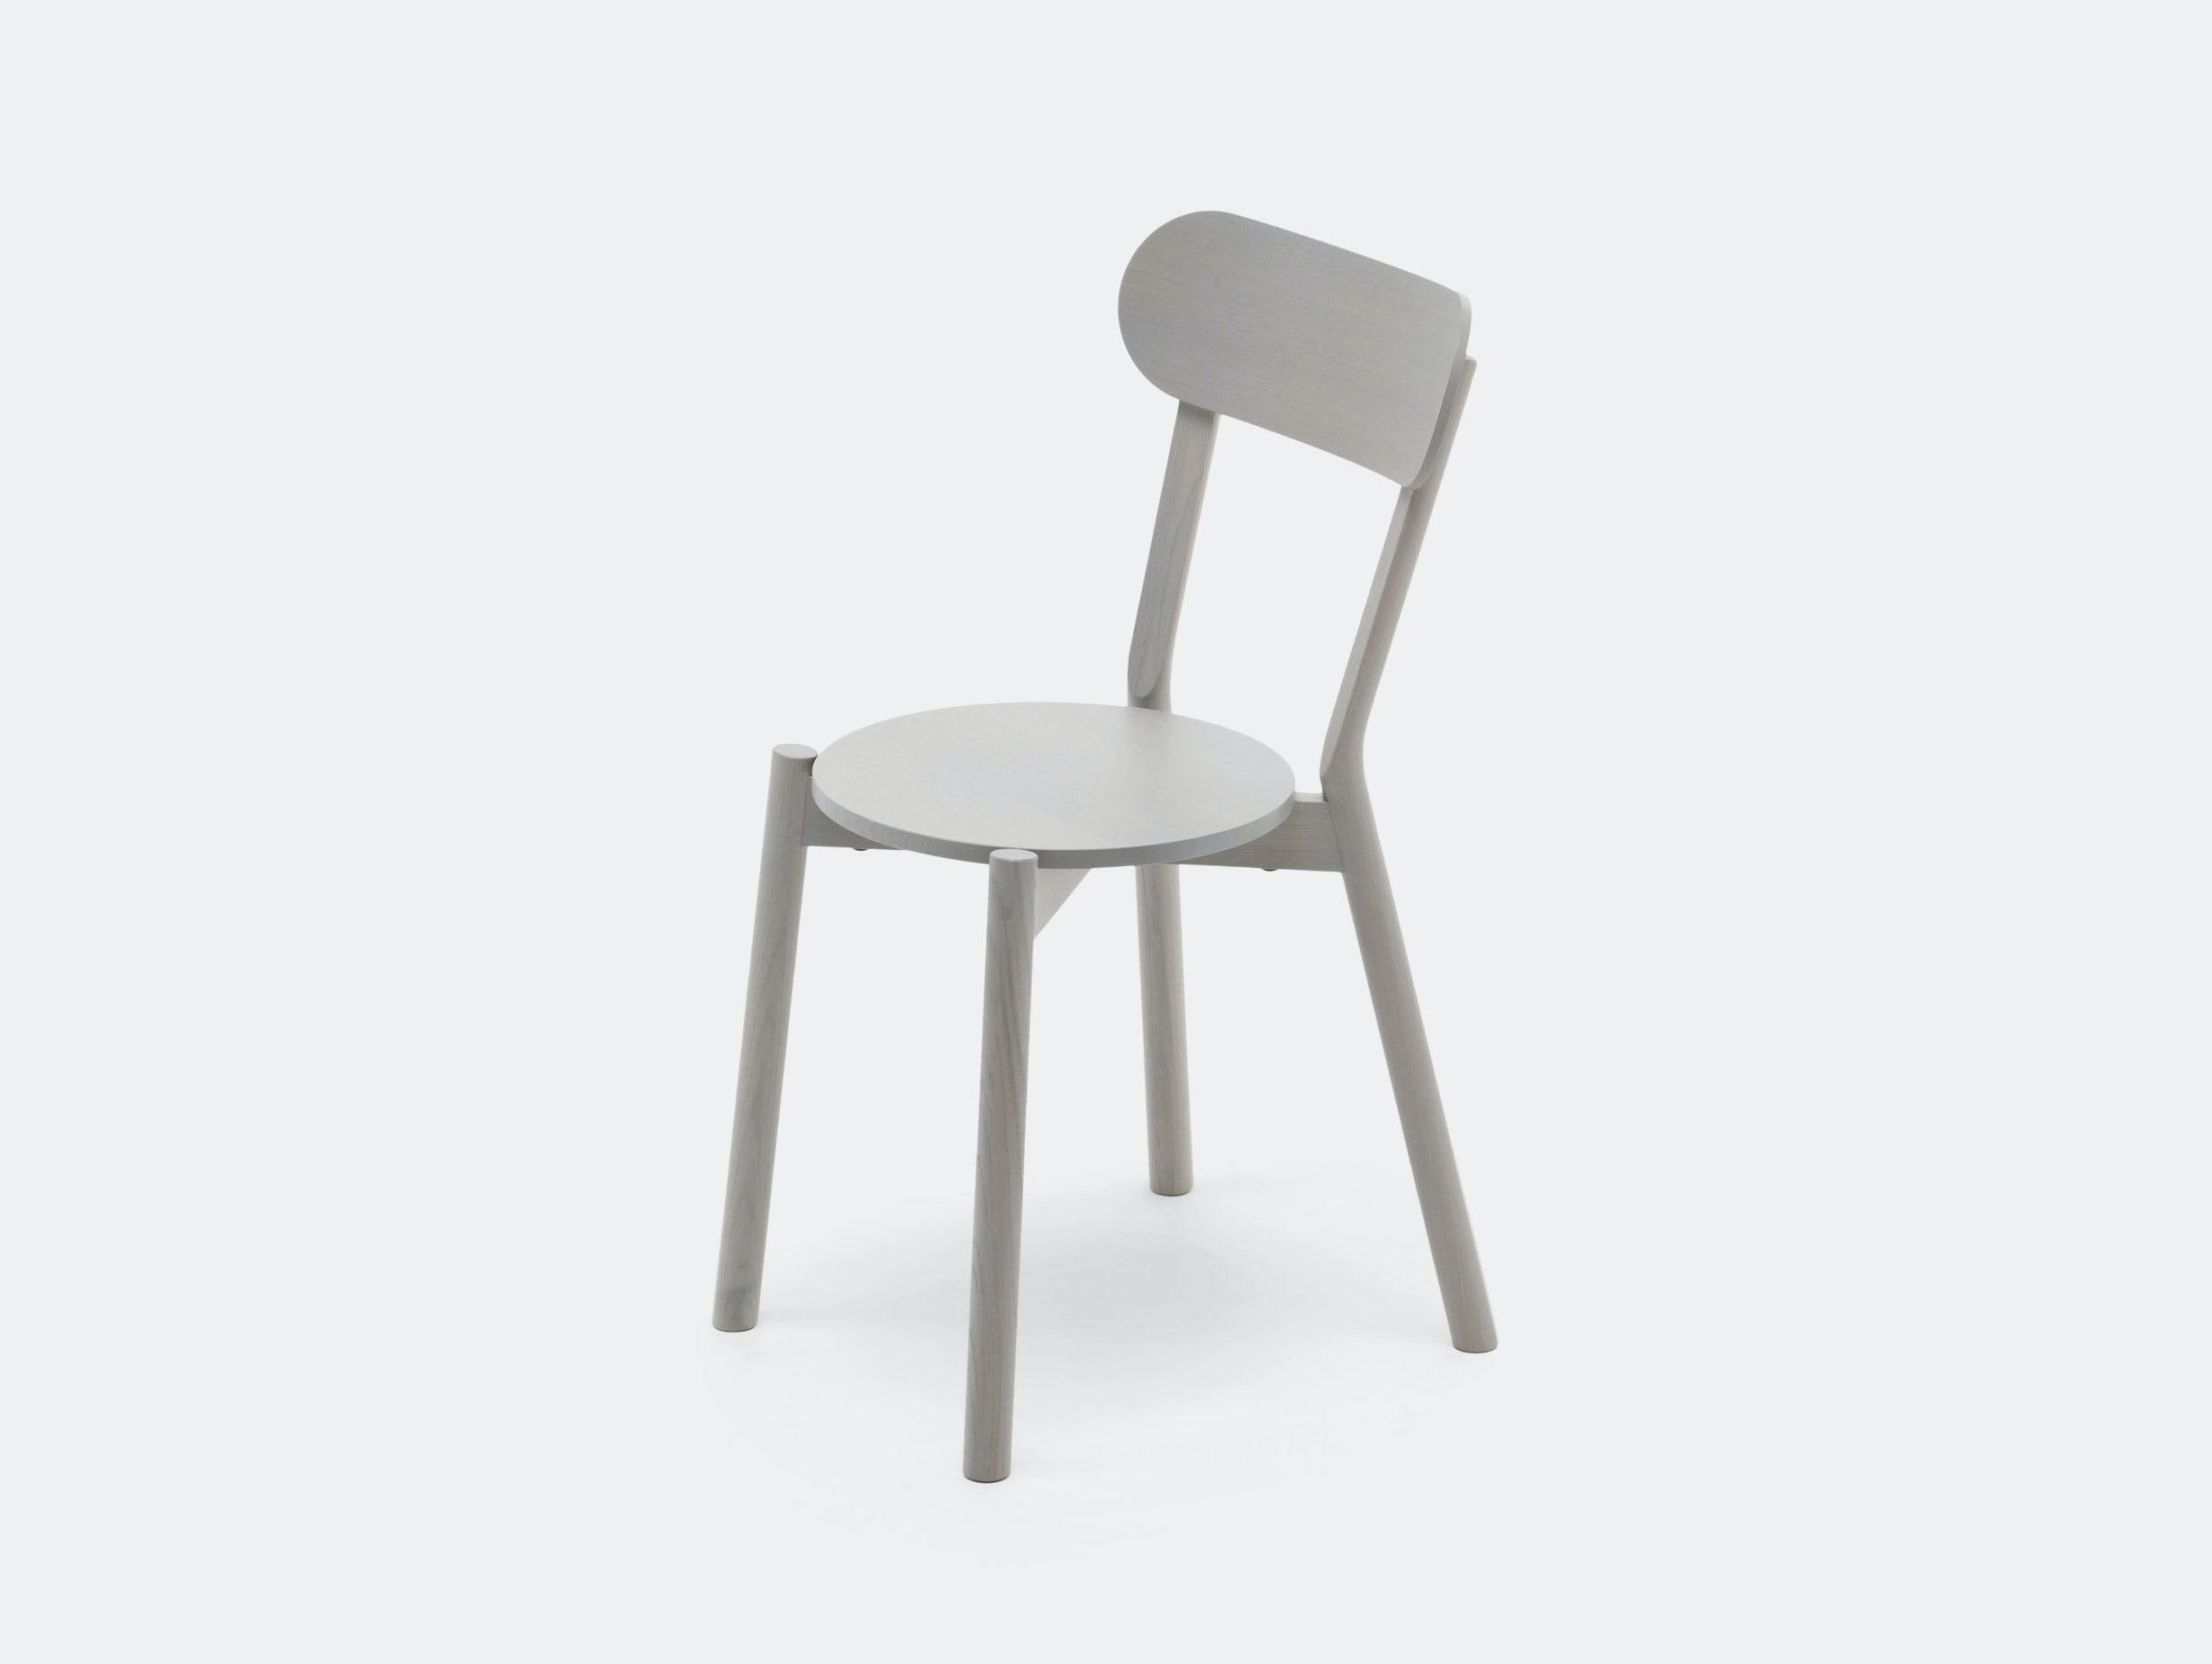 Castor Chair image